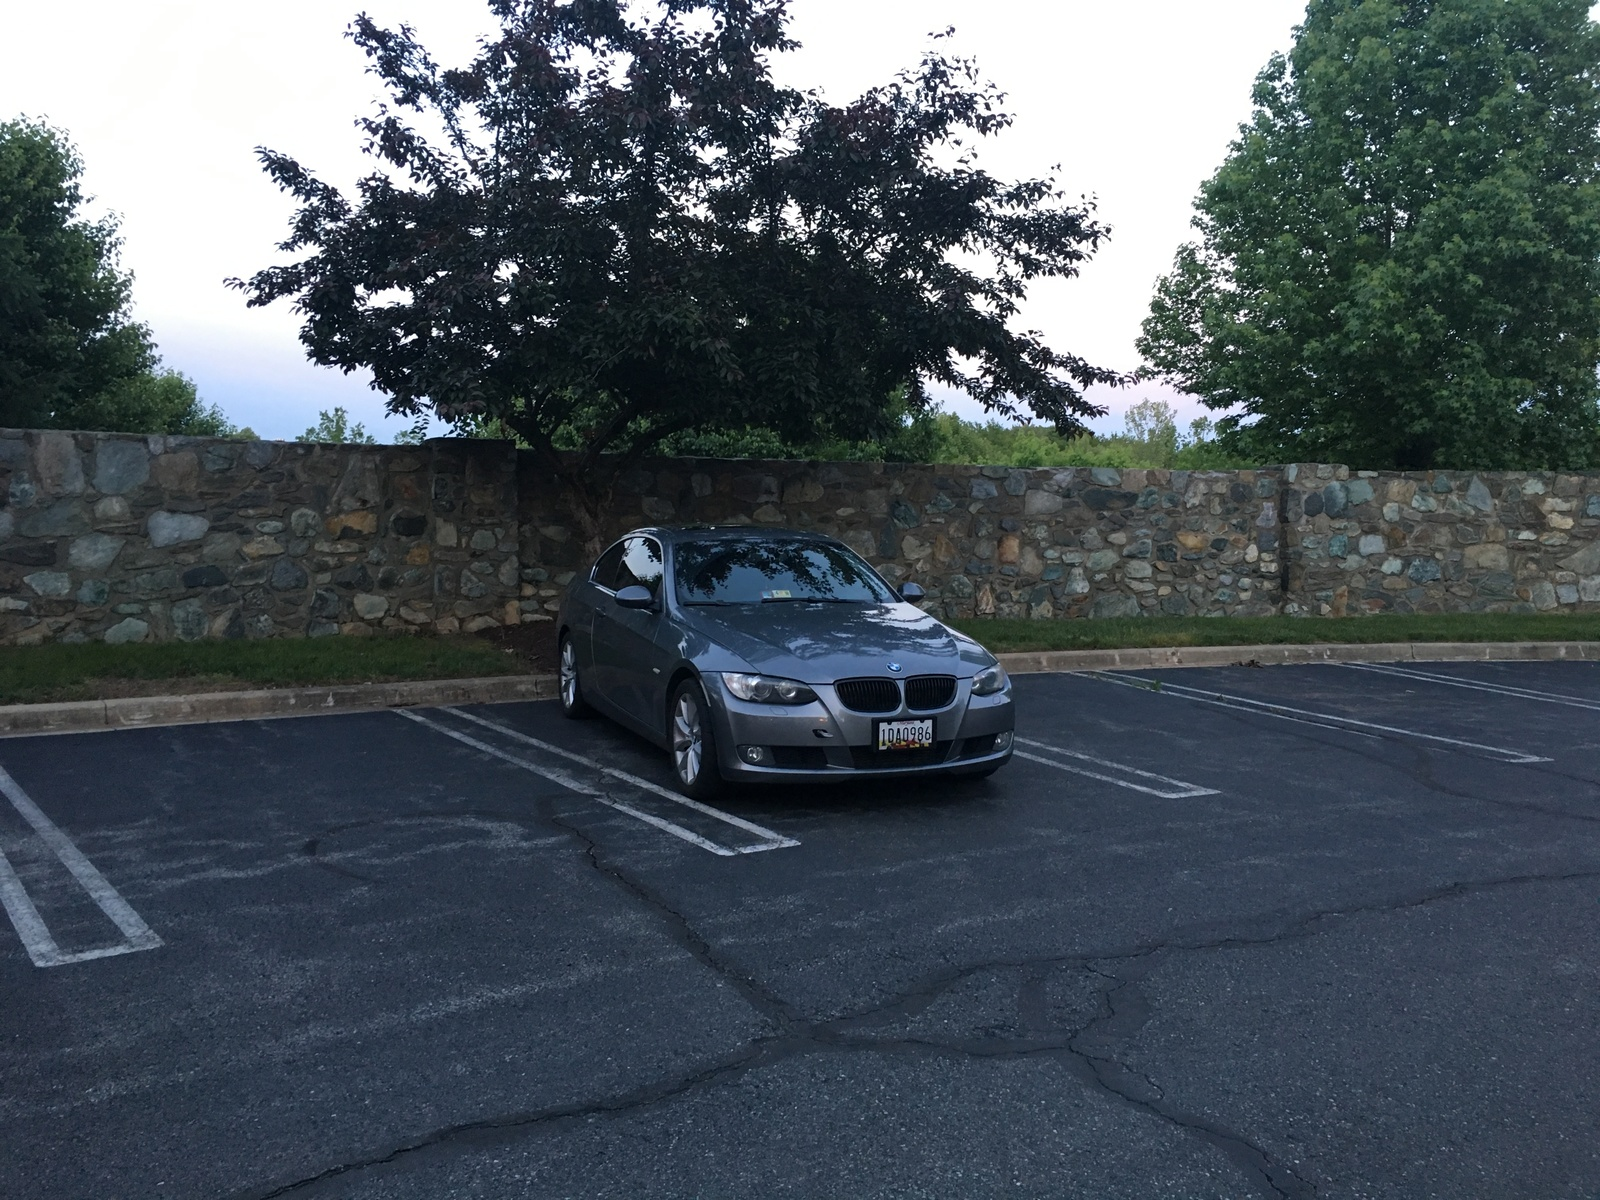 Gray 2008 BMW 335xi